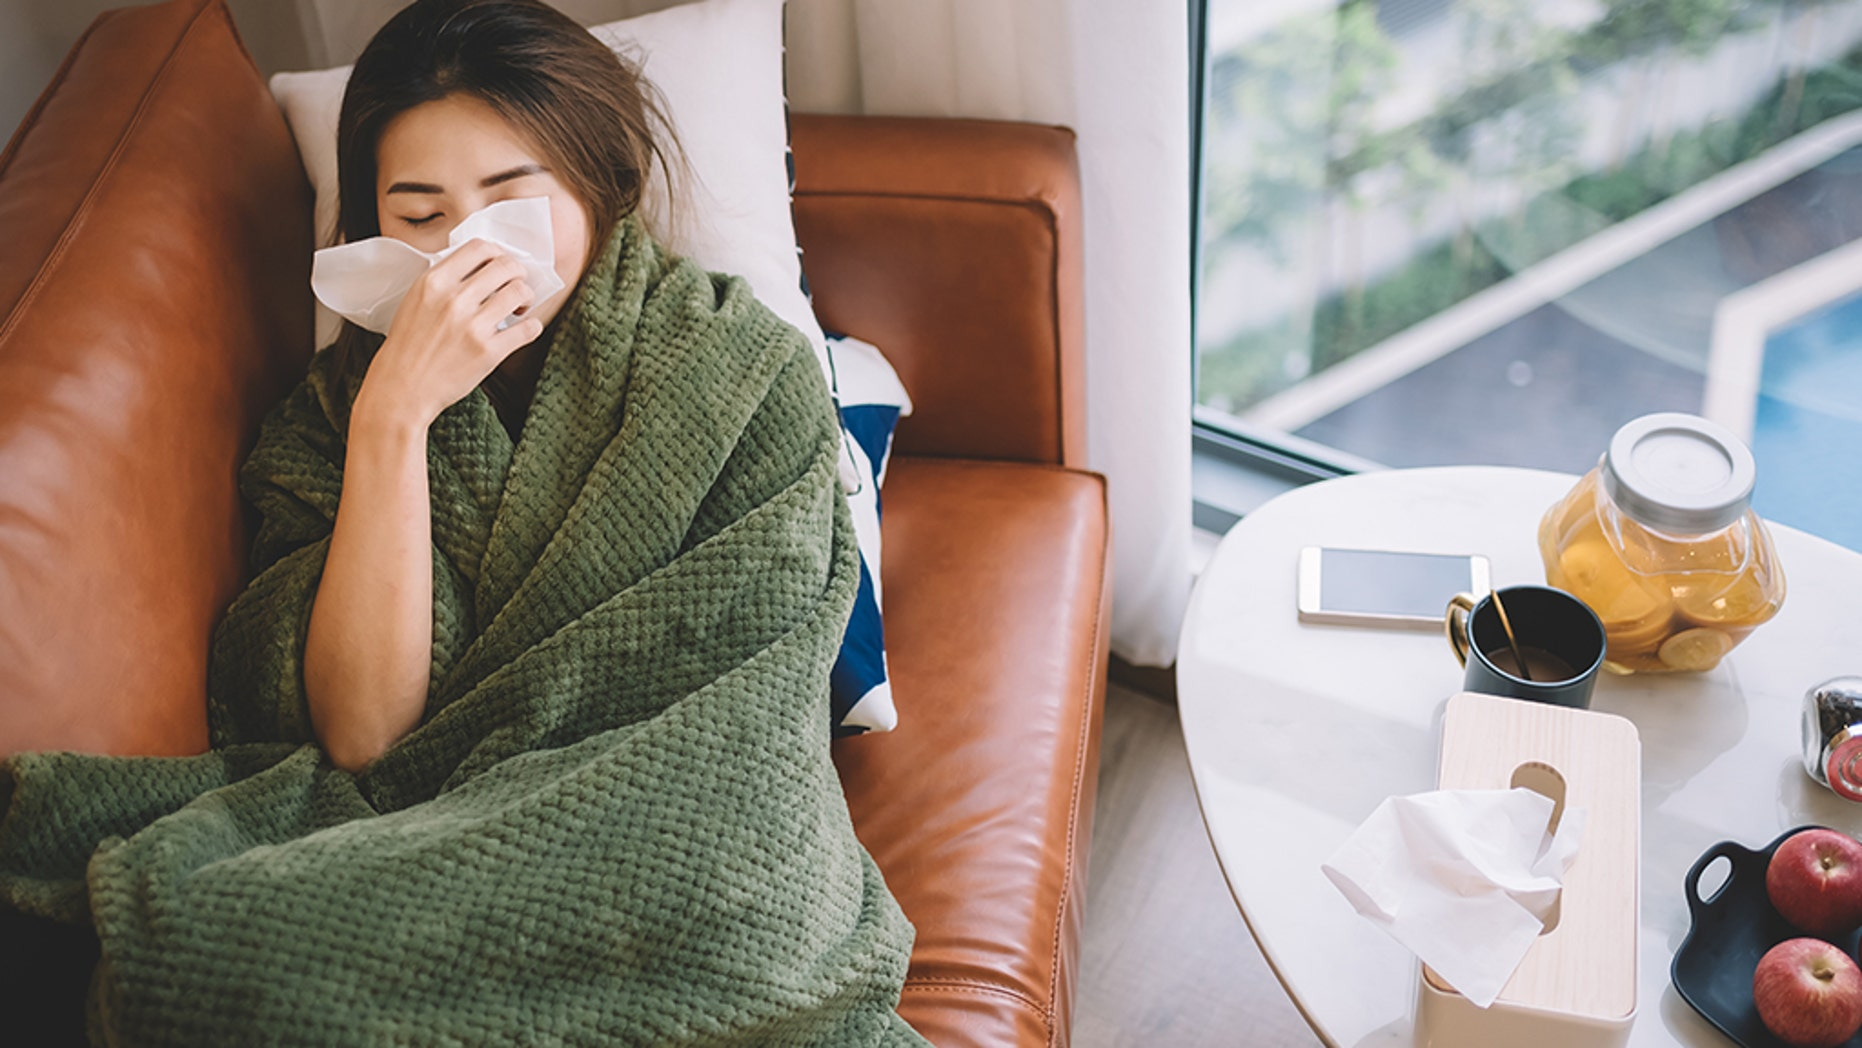 A company that sells used cloths to help consumers decide when to get sick has been reportedly online for months.